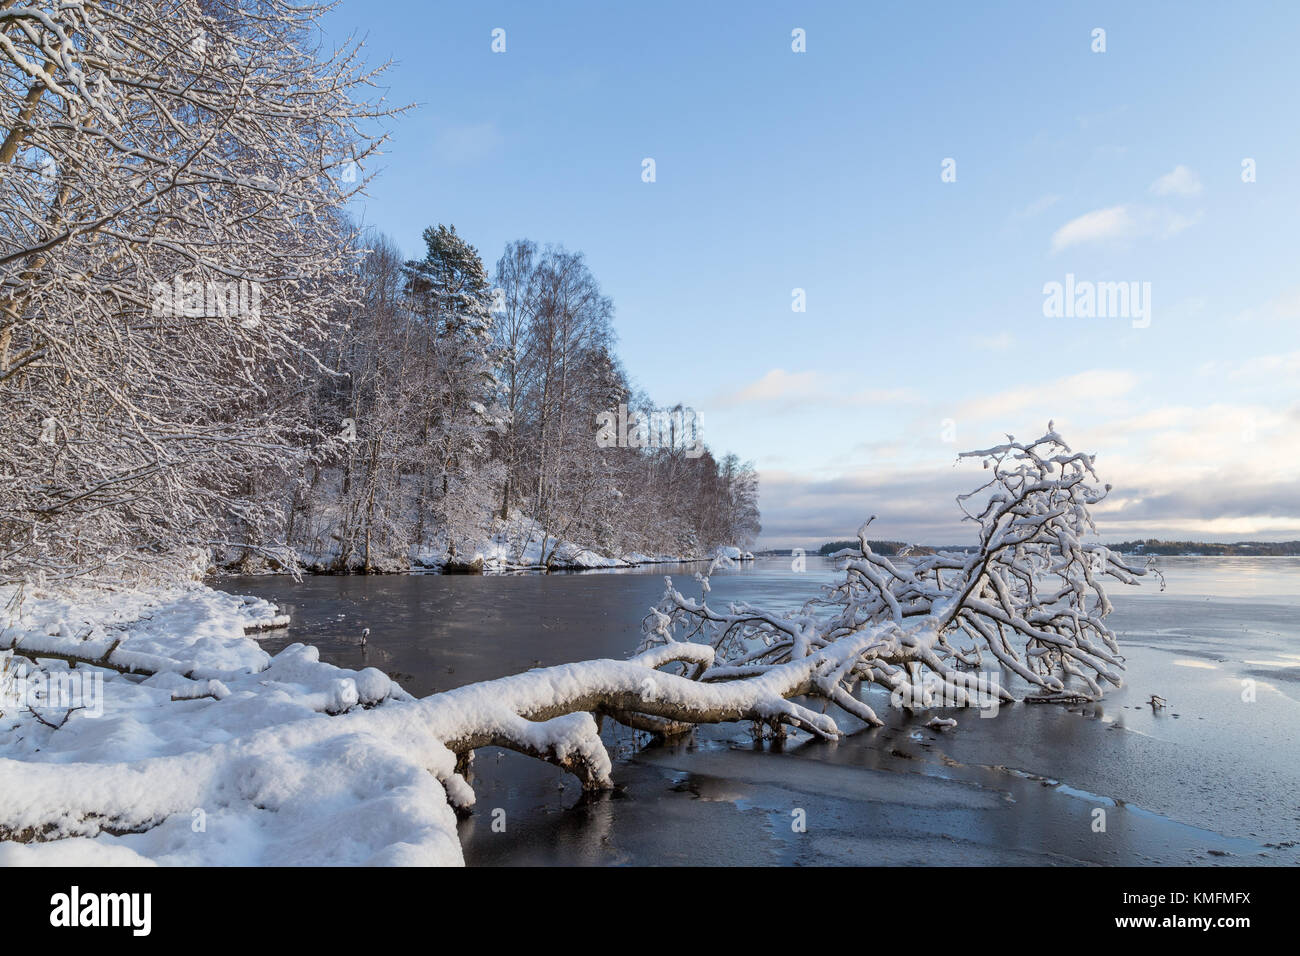 Beautiful view of snowy trees and frozen Lake Pyhäjärvi in the winter in Tampere, Finland. Copy space. - Stock Image